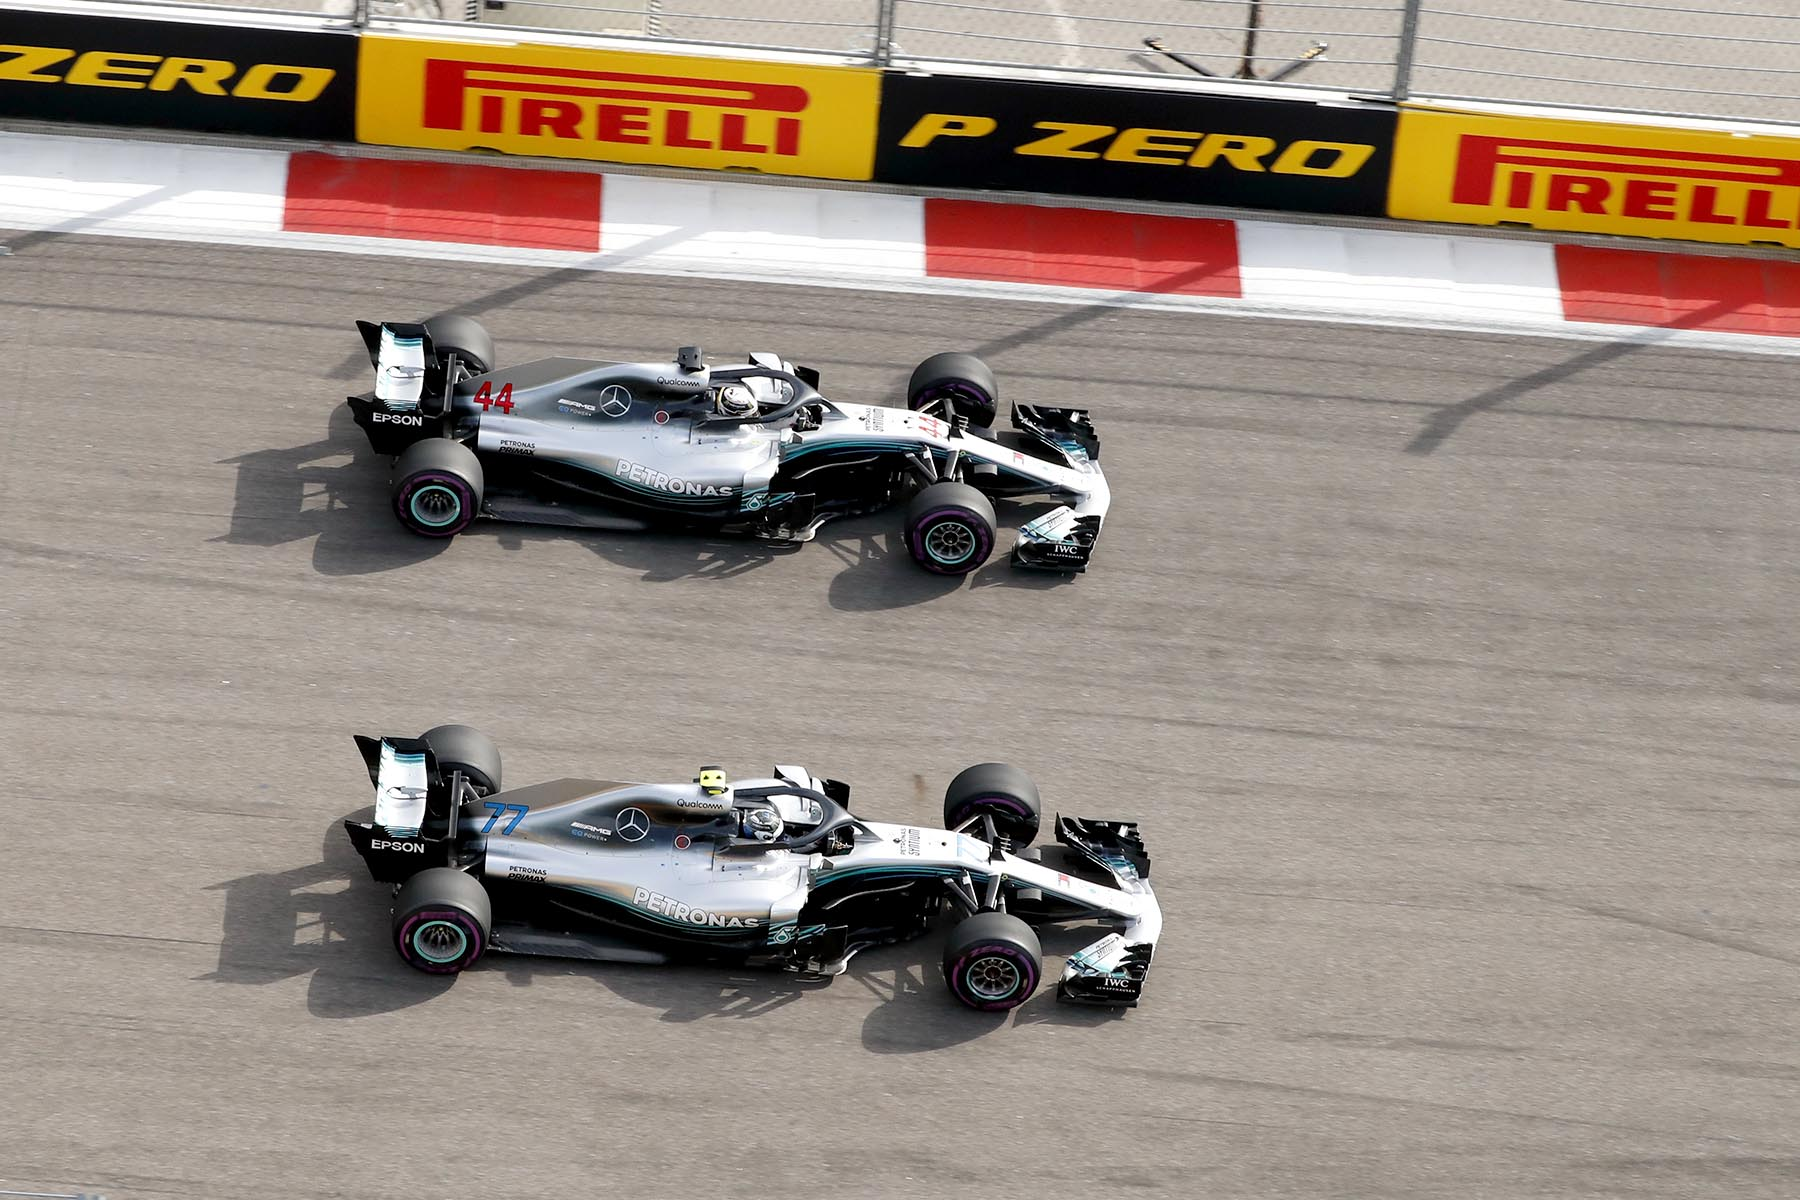 Valtteri Bottas and Lewis Hamilton in formation at the 2018 Russian Grand Prix.